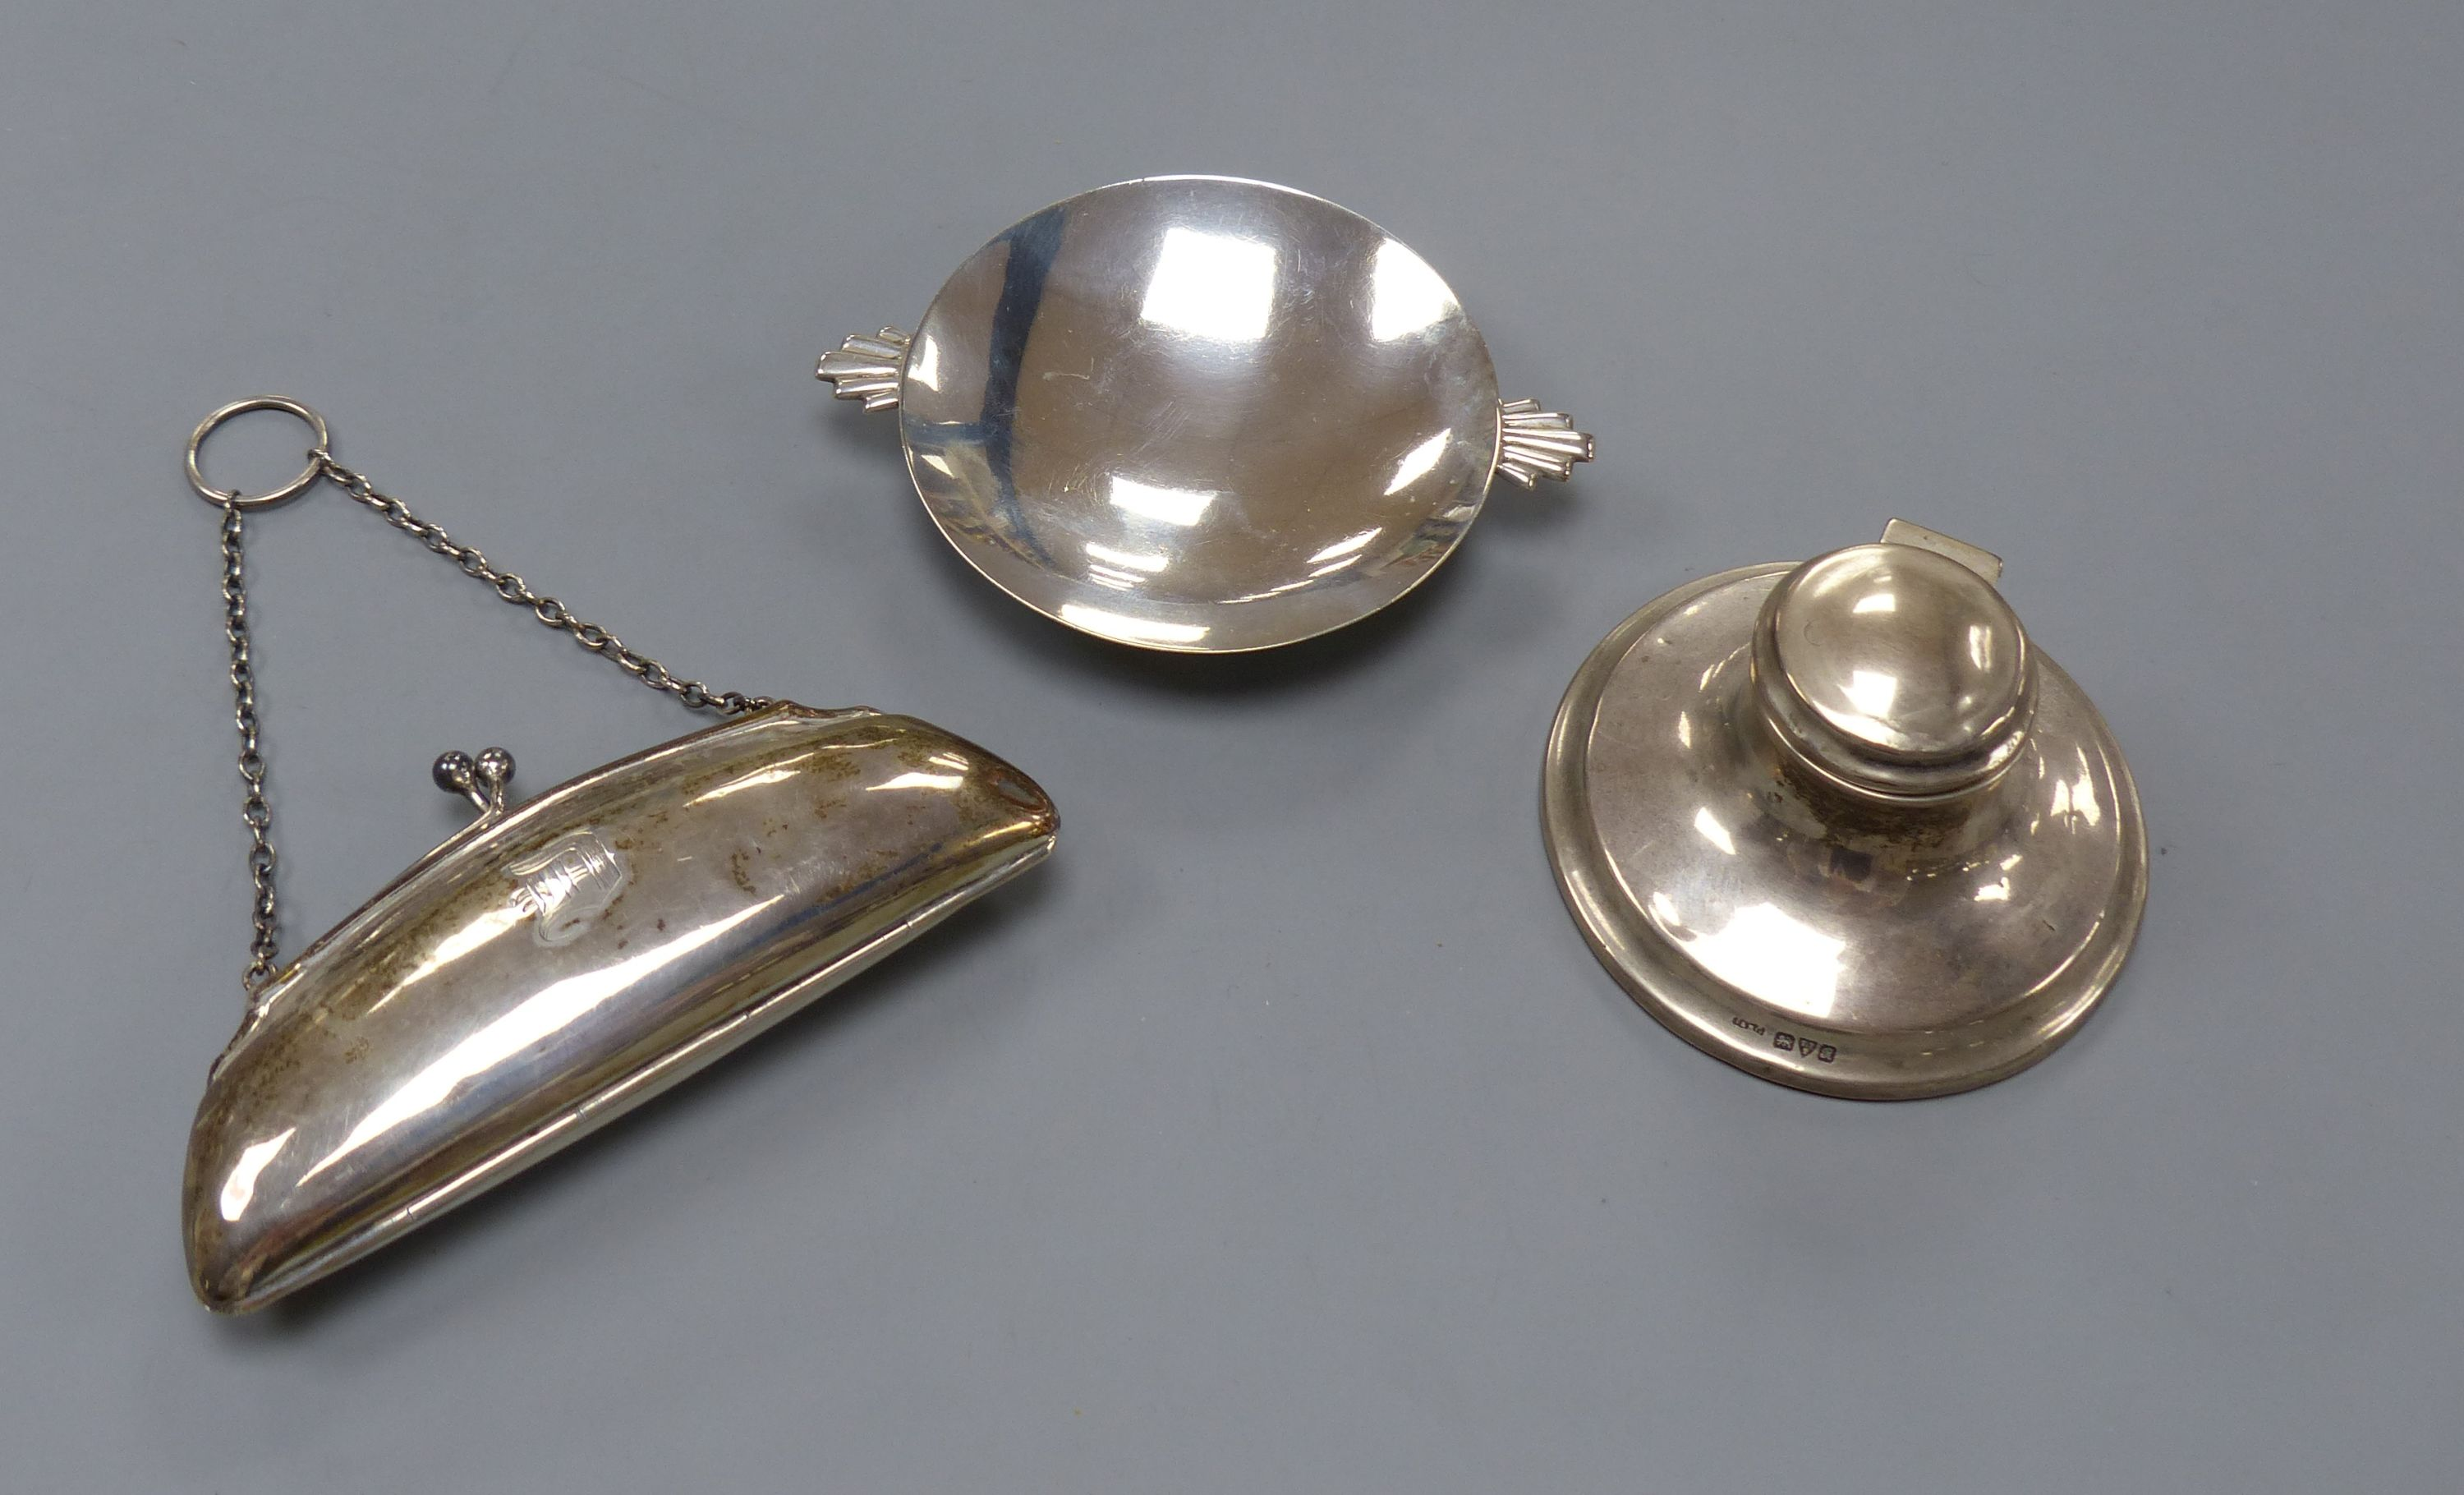 An Art Deco silver nut dish with fan shaped handles, Birmingham, 1934, 11.5cm, a silver purse and a